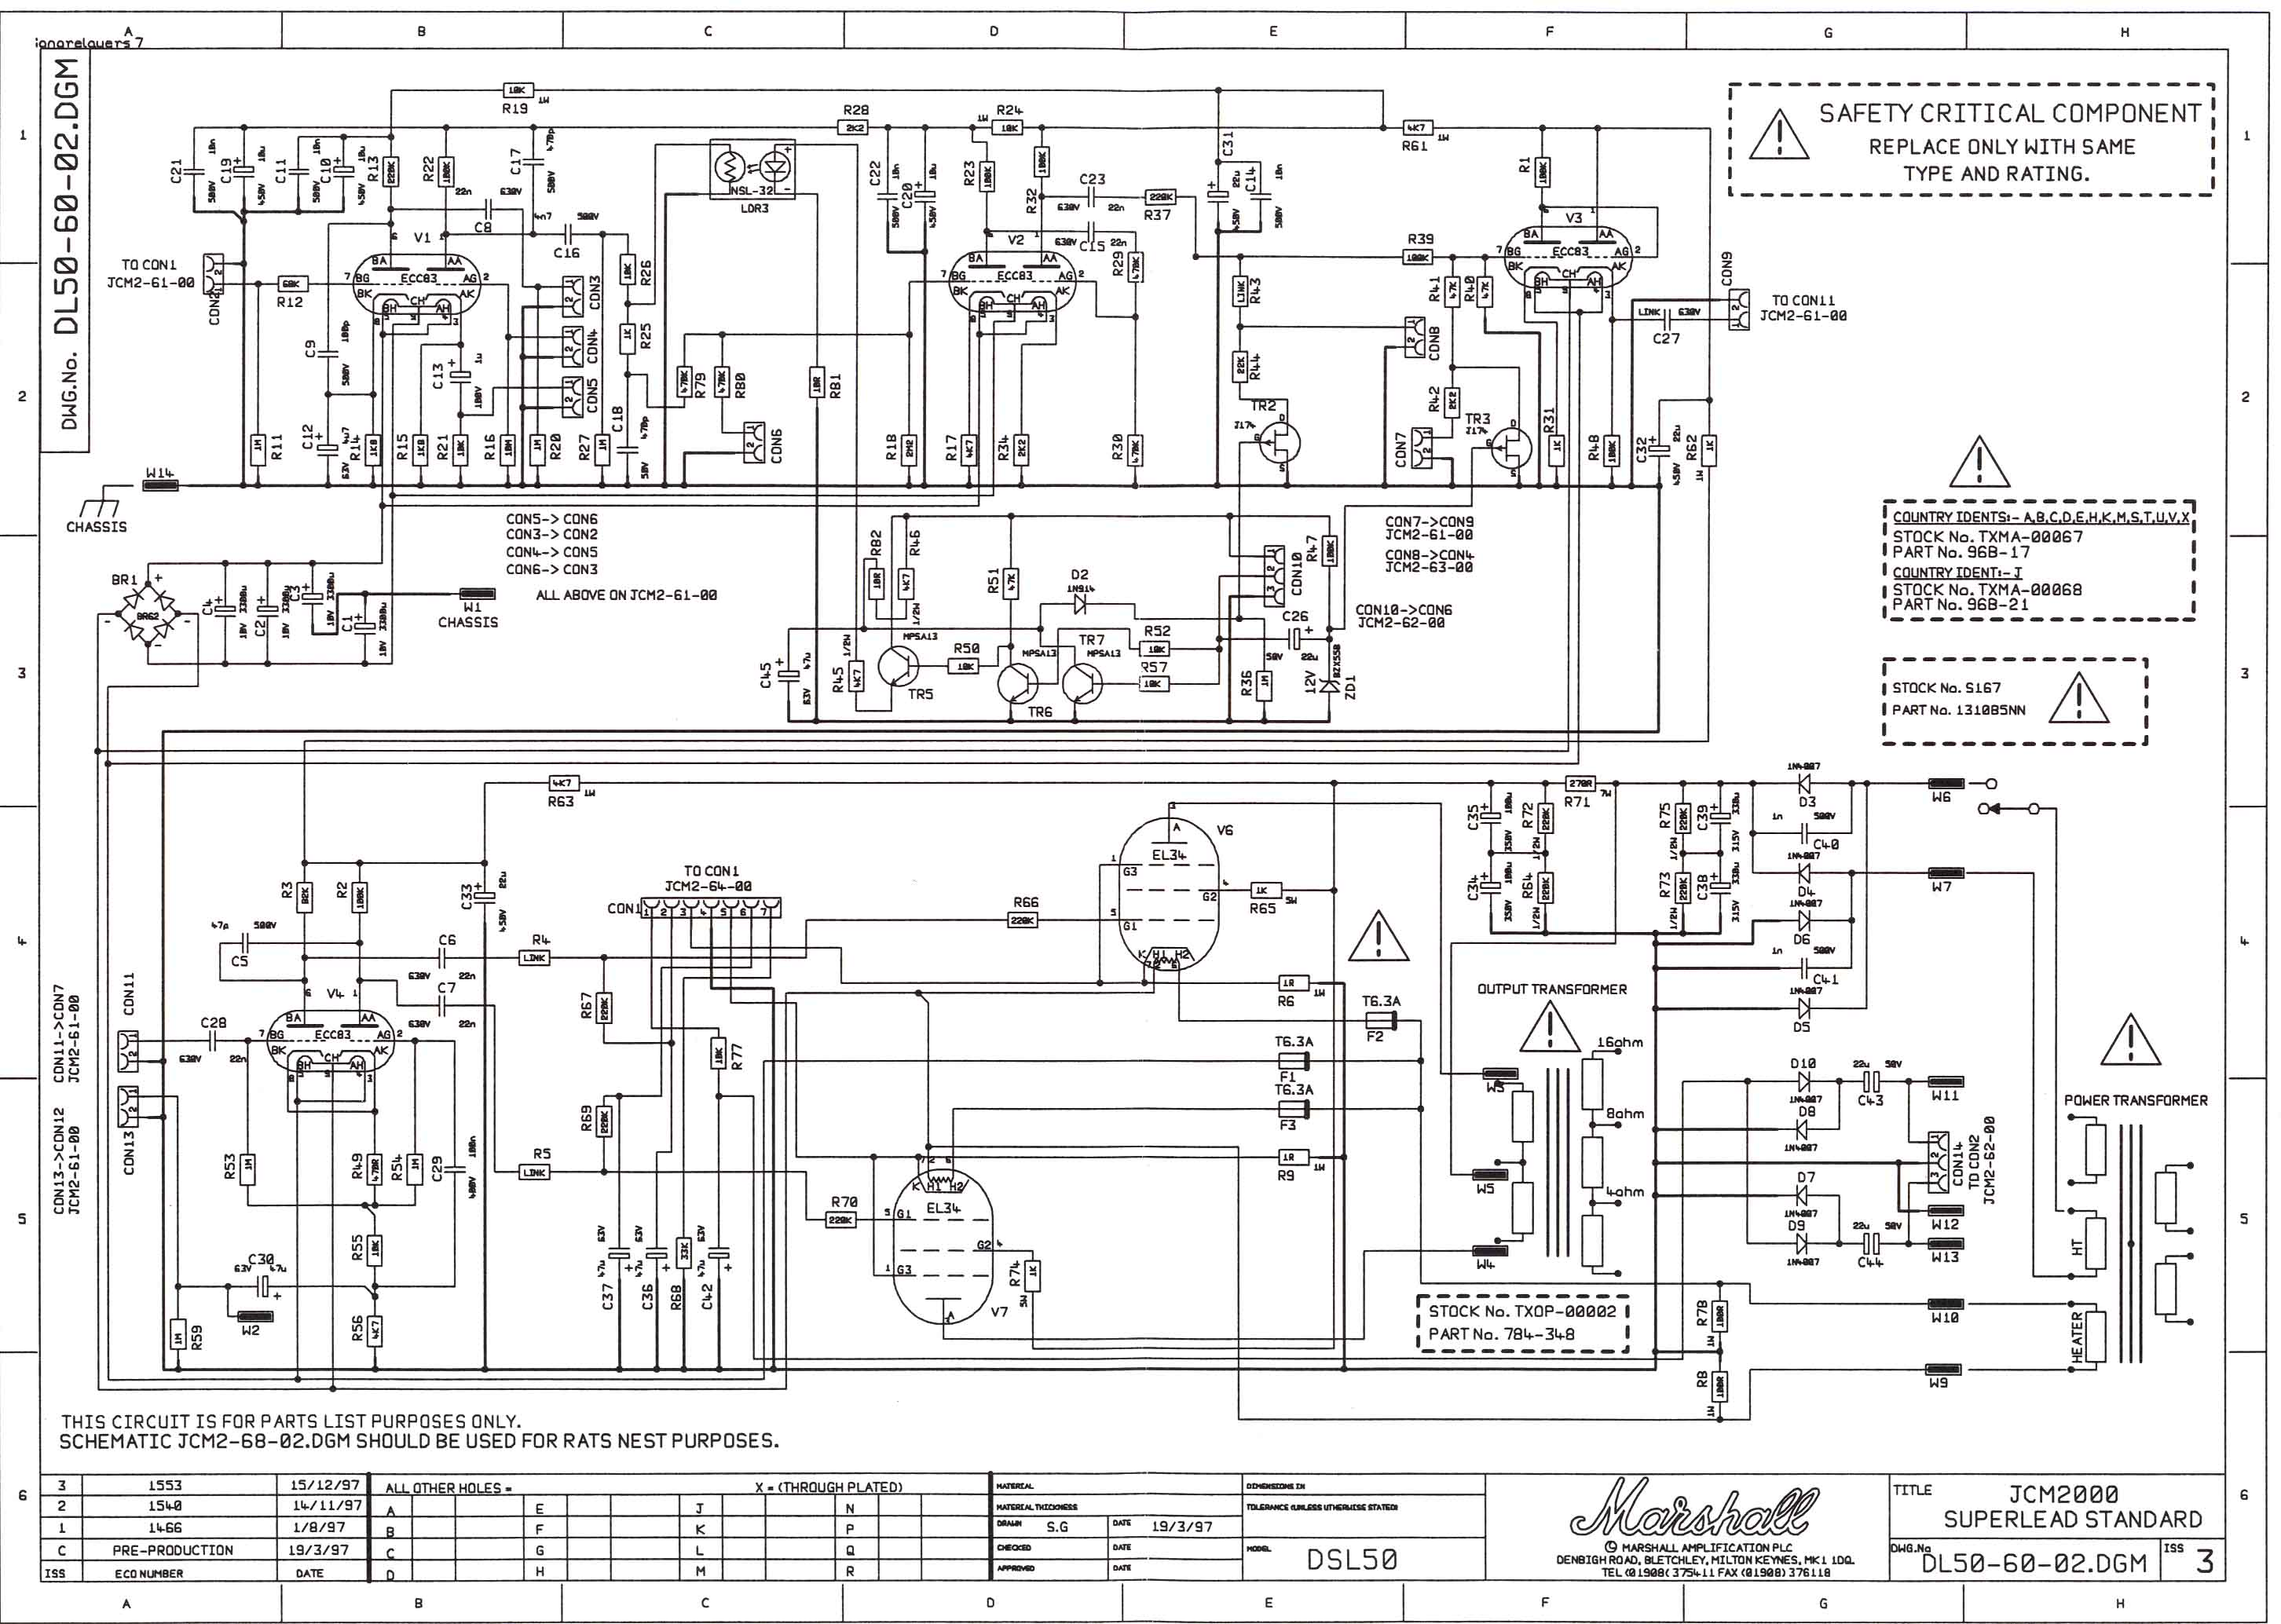 Marshall JCM2000 DSL50 Schematic www thetubestore com marshall amp schematics Marshall 2204 Kit at bakdesigns.co